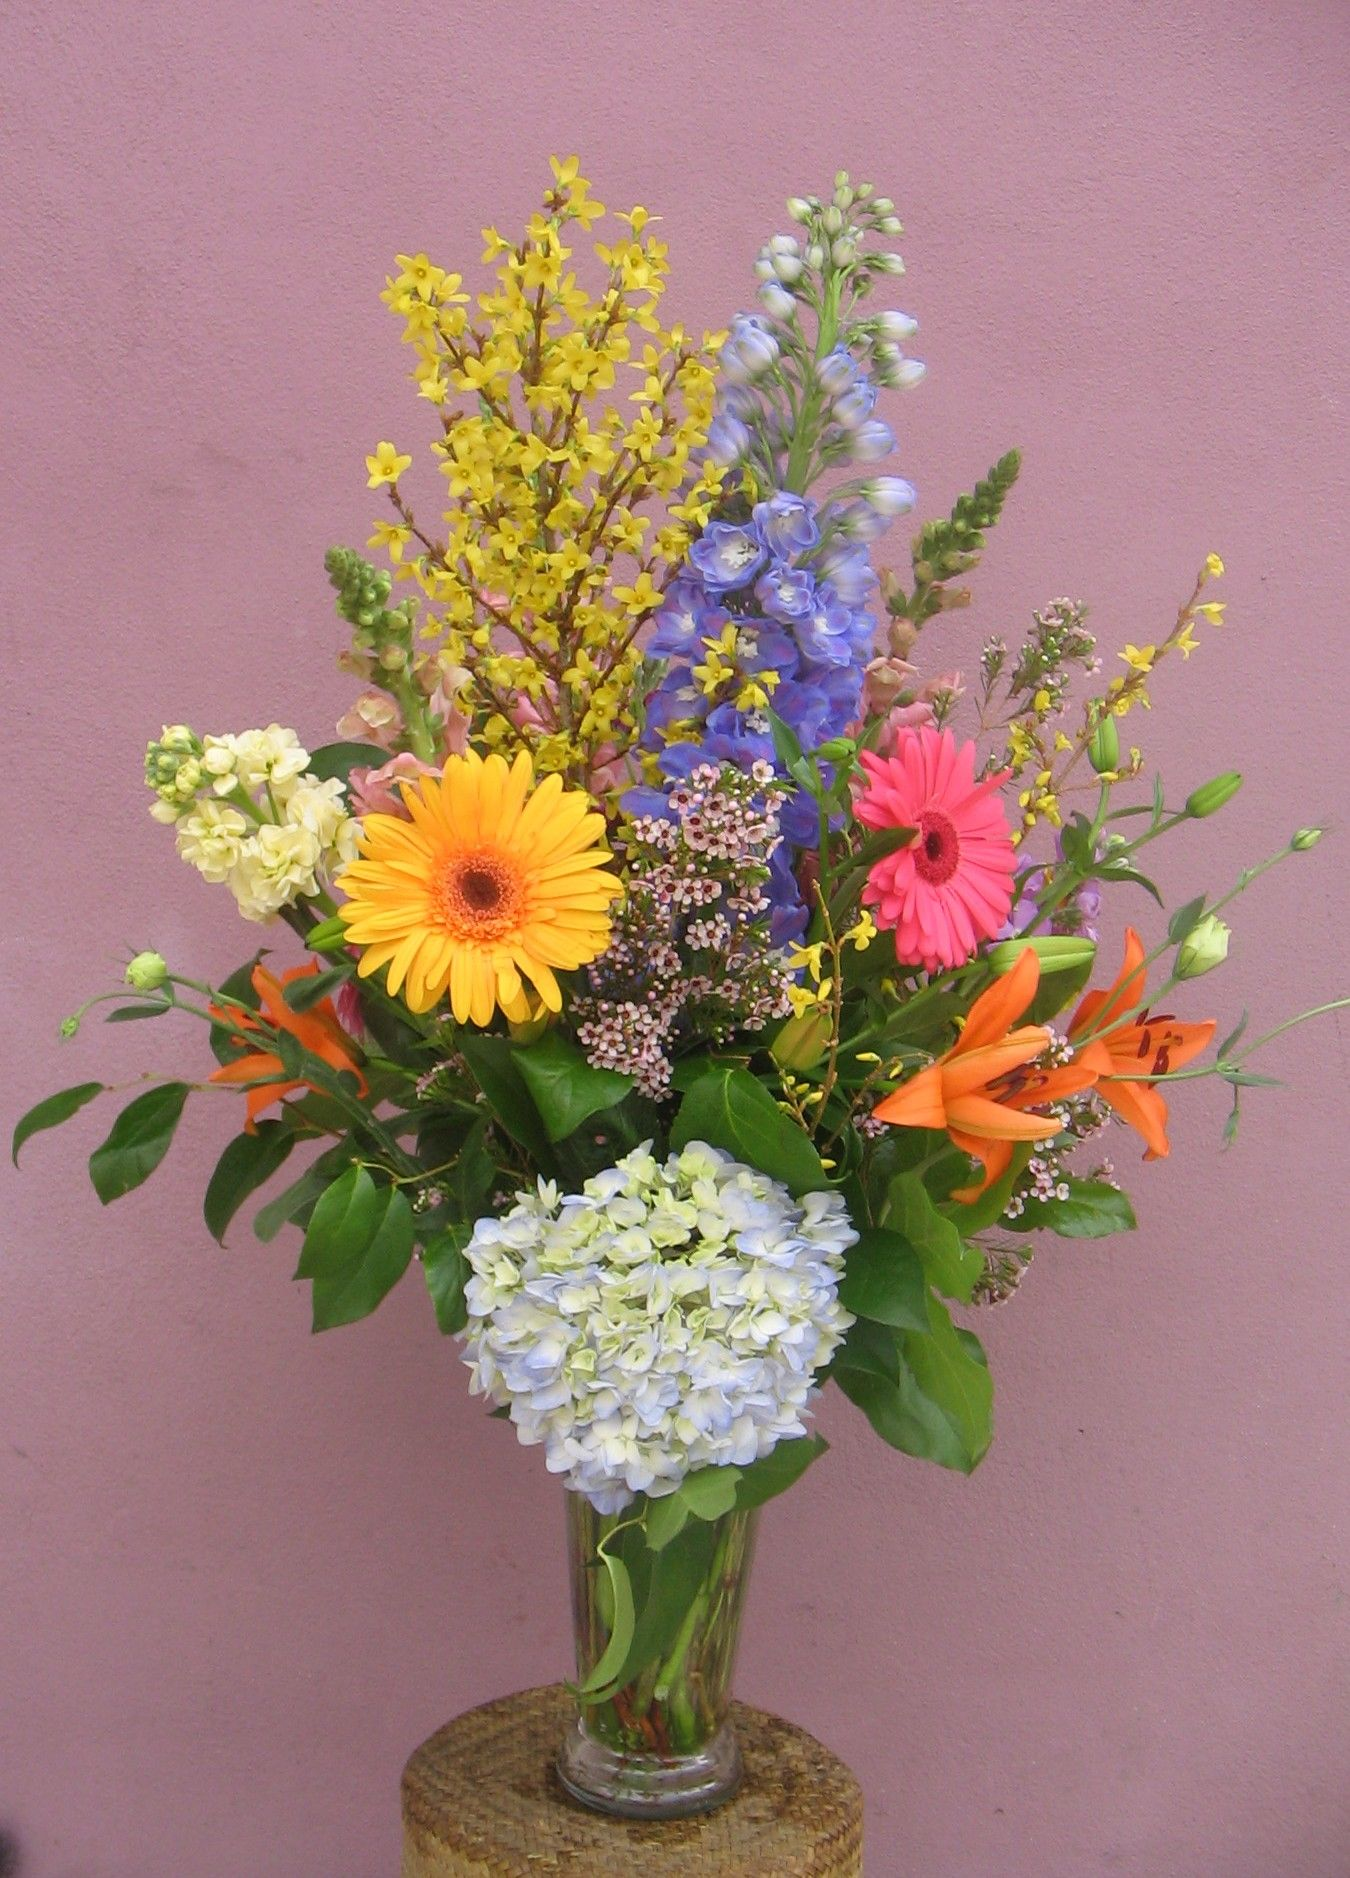 100-2 100.00 Classic WOW! This wonderful arrangement combines late spring and early summer blooms. The flowering forsythia branches add a sentiment of renewal, offset by the calming blues of the hybrid delphinium and softest blue hydrangea. We've added gerbera daisies and hot orange lilies for eye-popping excitement. A truly wonderful assortment.